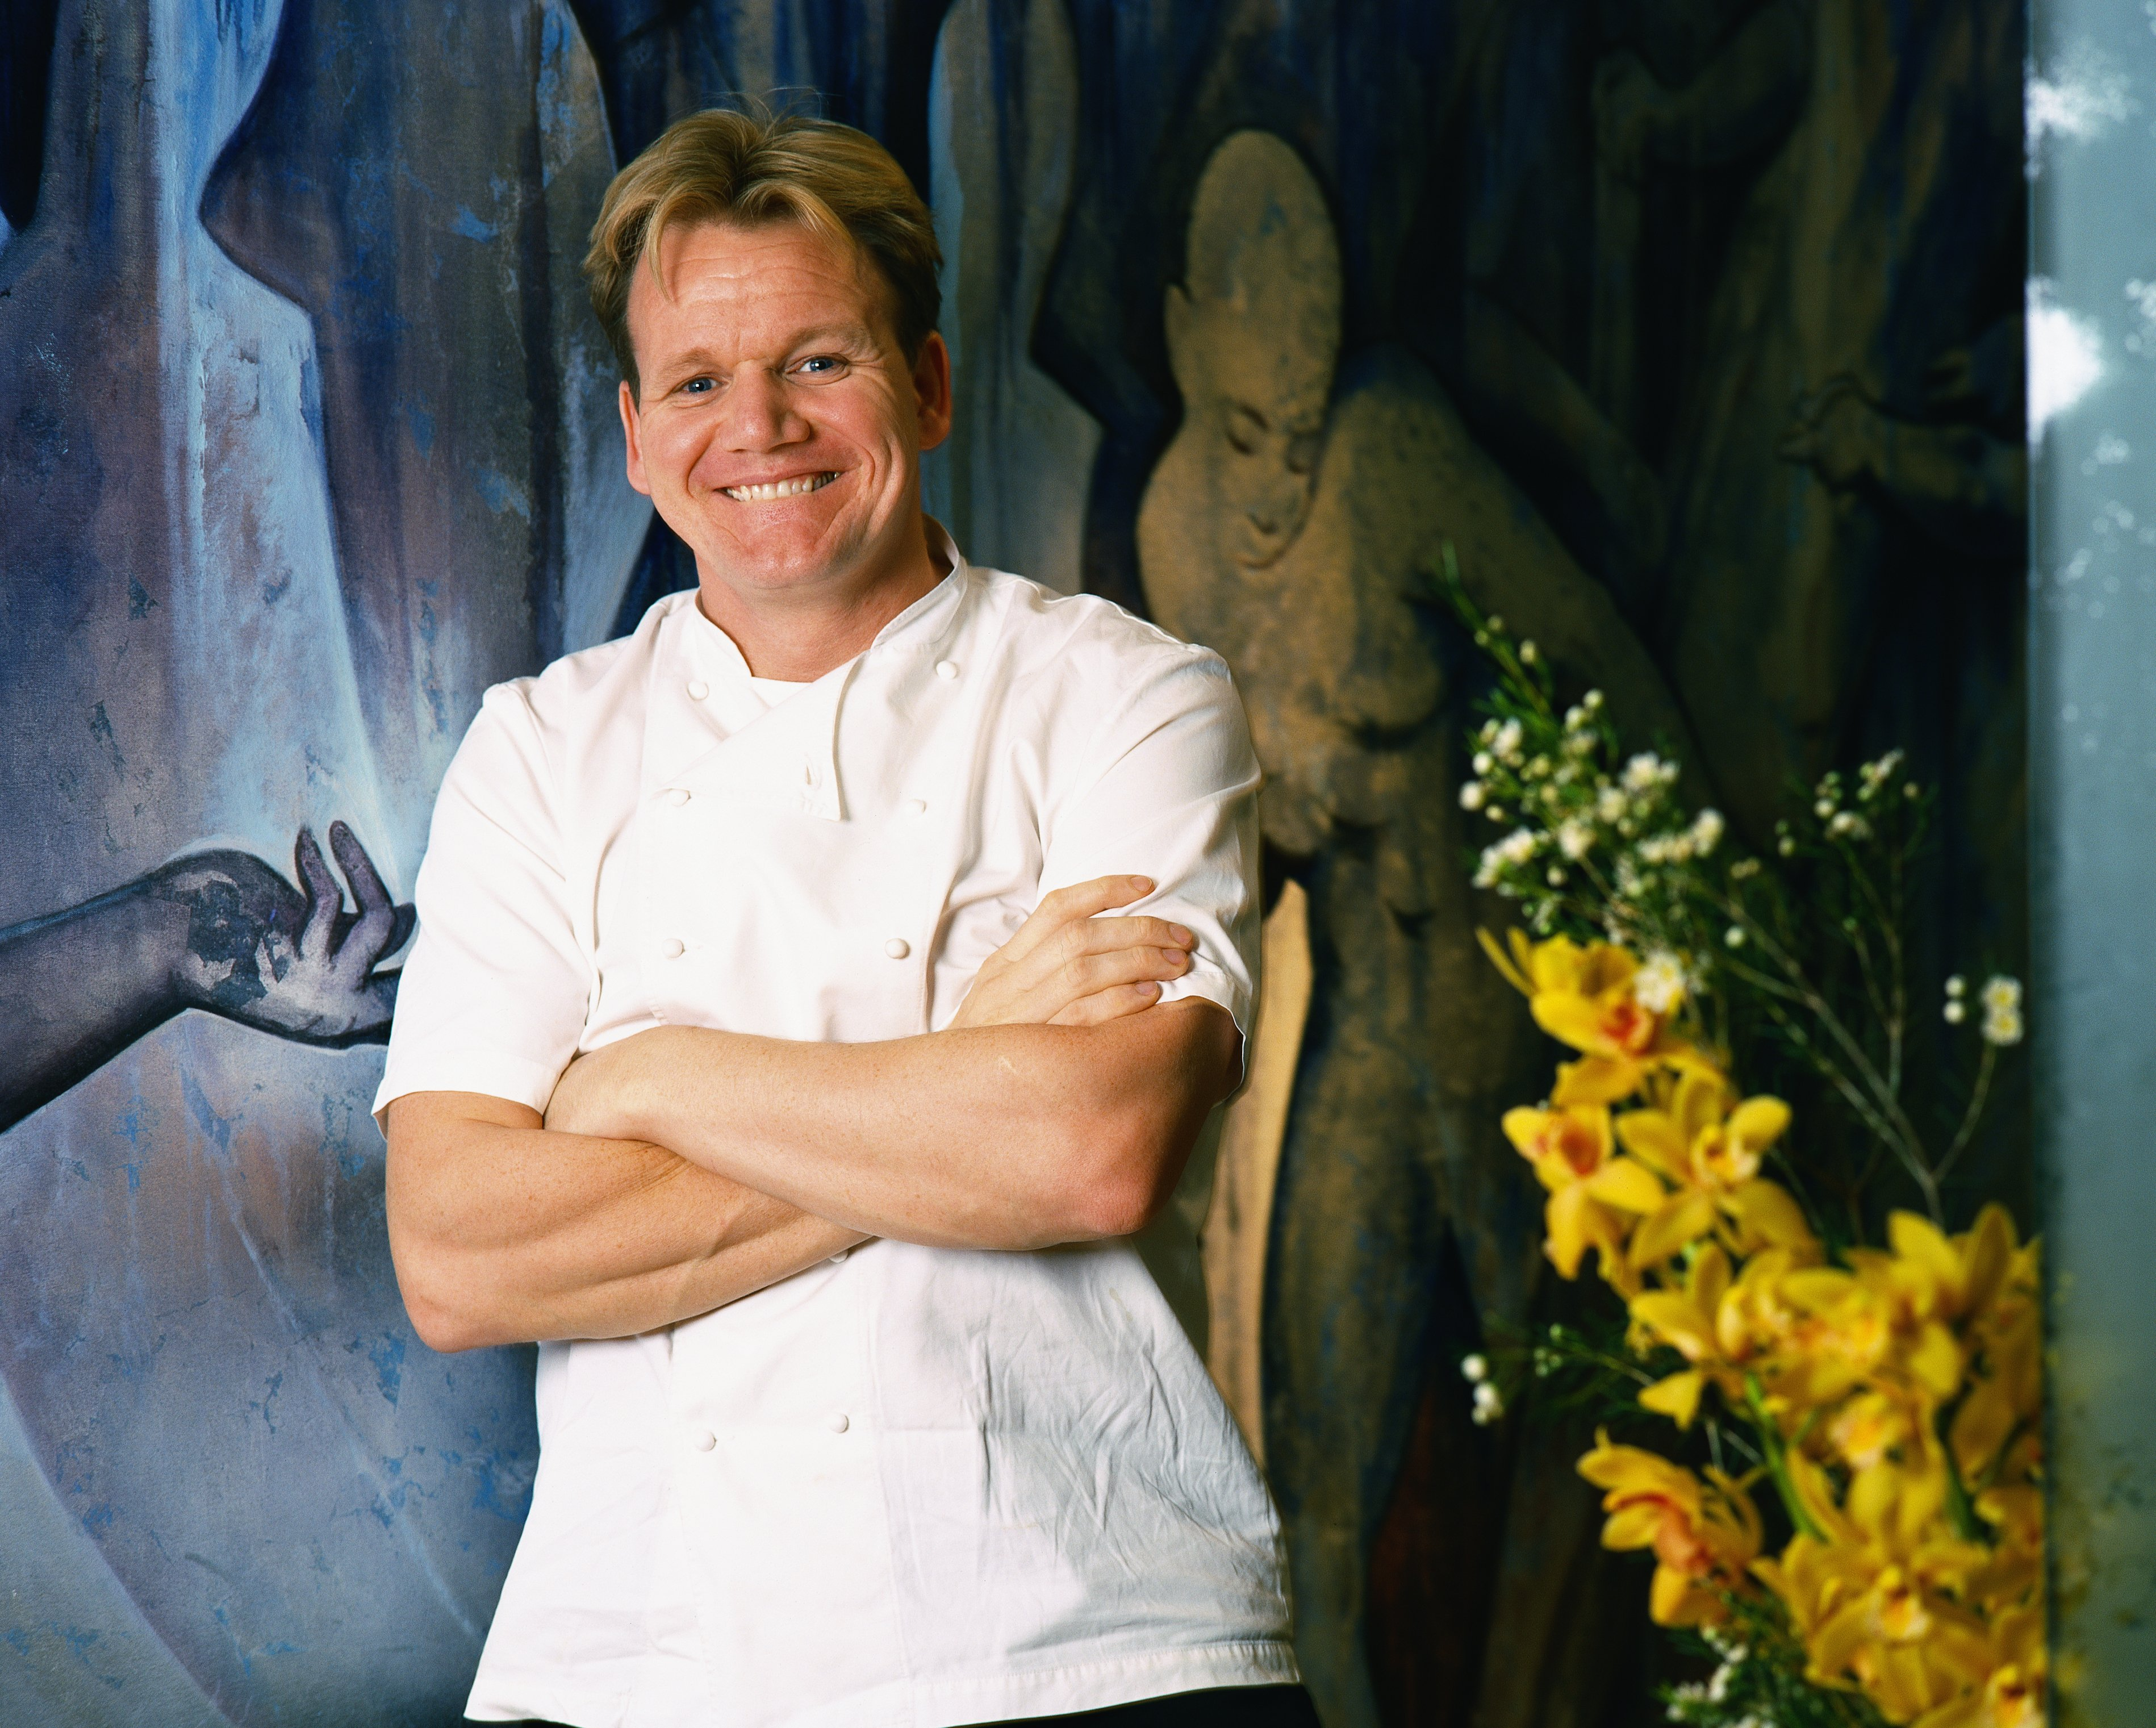 A 2001 photo of celebrity Chef Gordon Ramsay beside his restaurant in London. | Photo: Getty Images